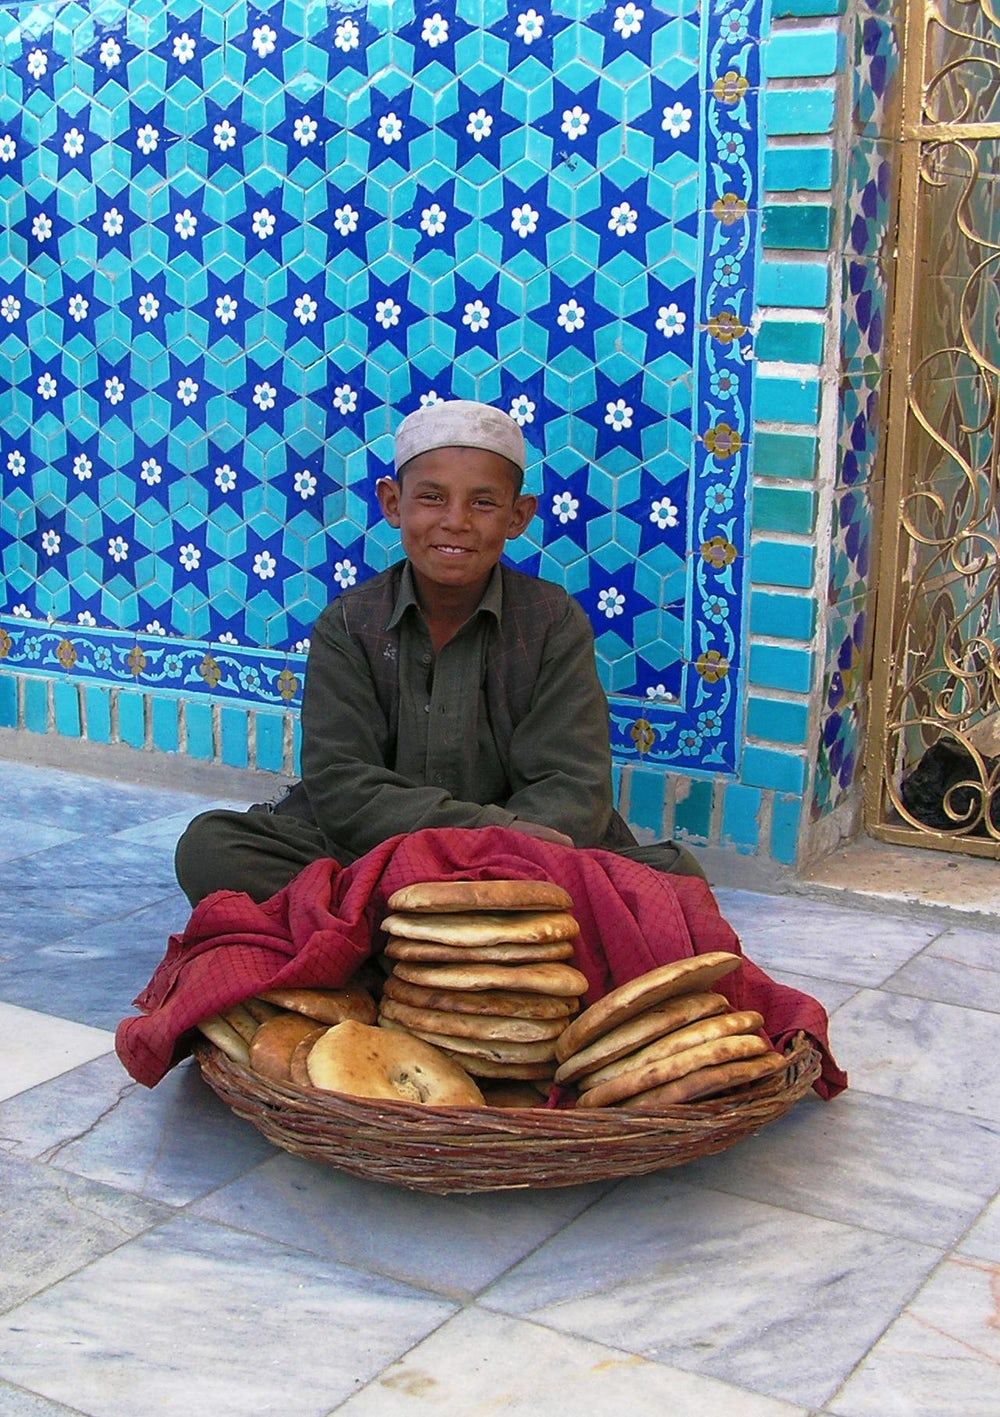 Young boy selling bread at the Blue Mosque in Mazar e Sharif. This round Afghan naan bread is typical of the northern part of the country. In Kabu, the bread is an elongated oval (caption and photos by David Sherman).